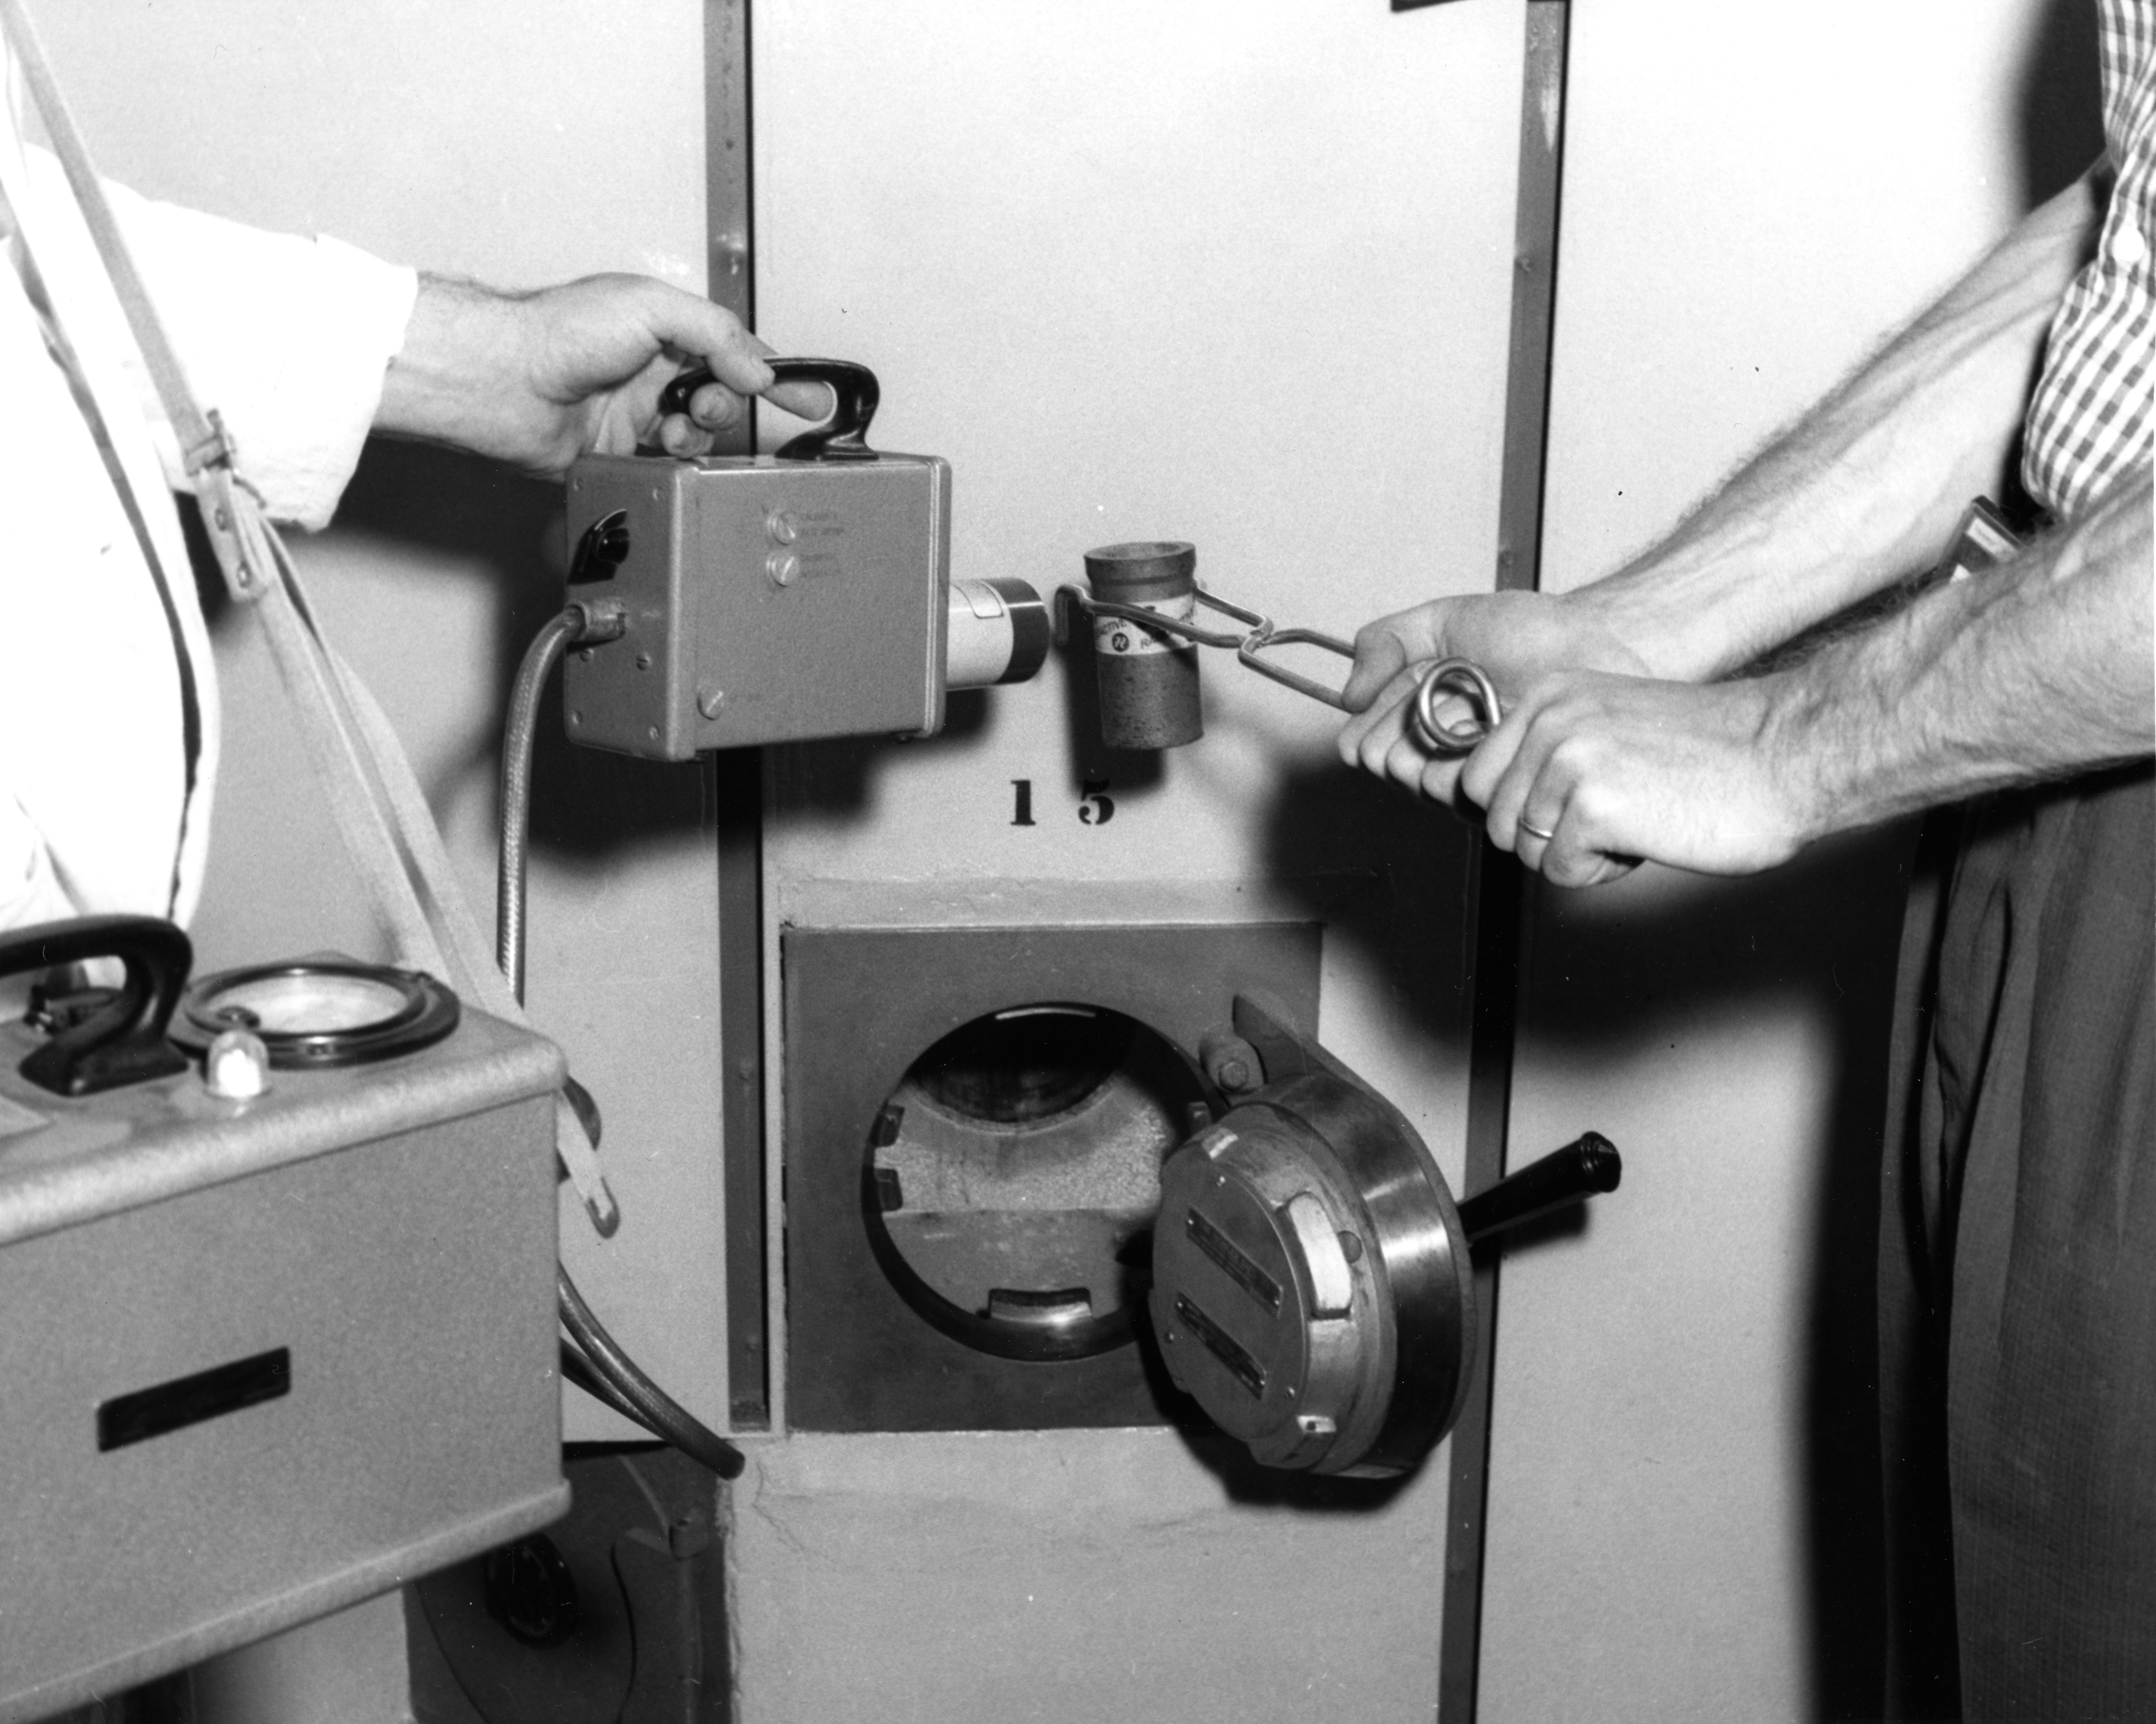 Researcher testing radioactivity level of sample with a geiger counter, 1950s?